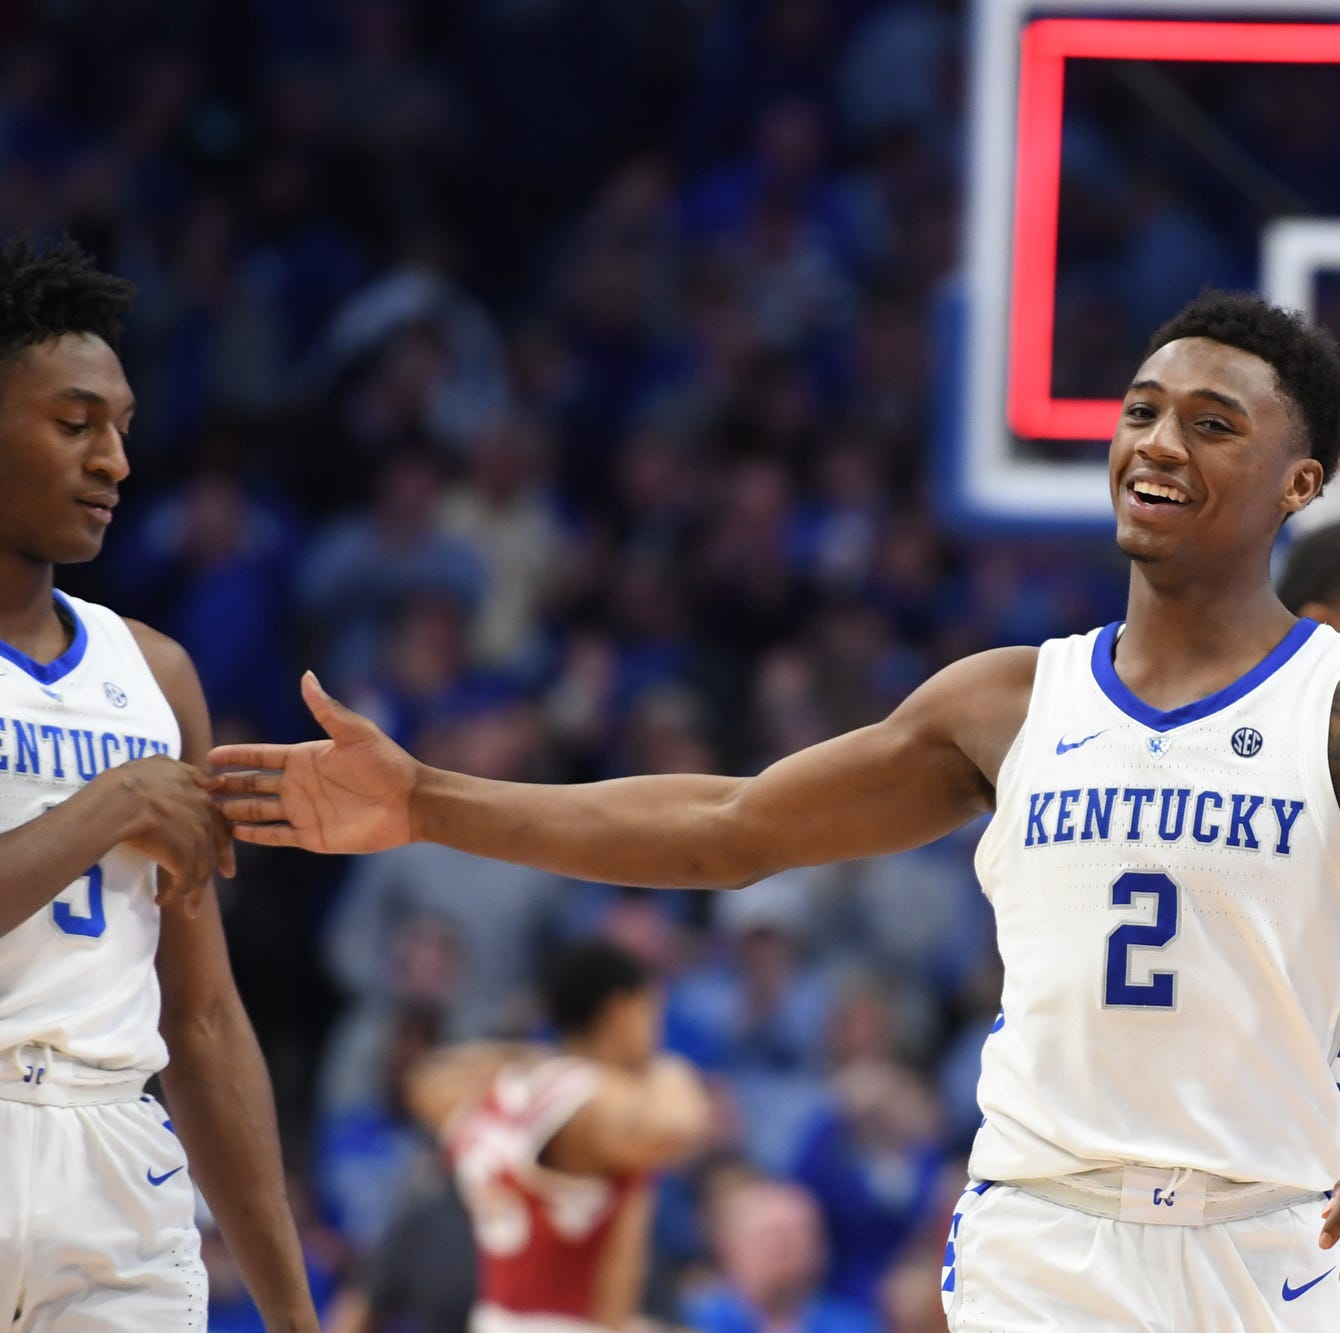 These Saturday games could impact Kentucky's NCAA Tournament seed